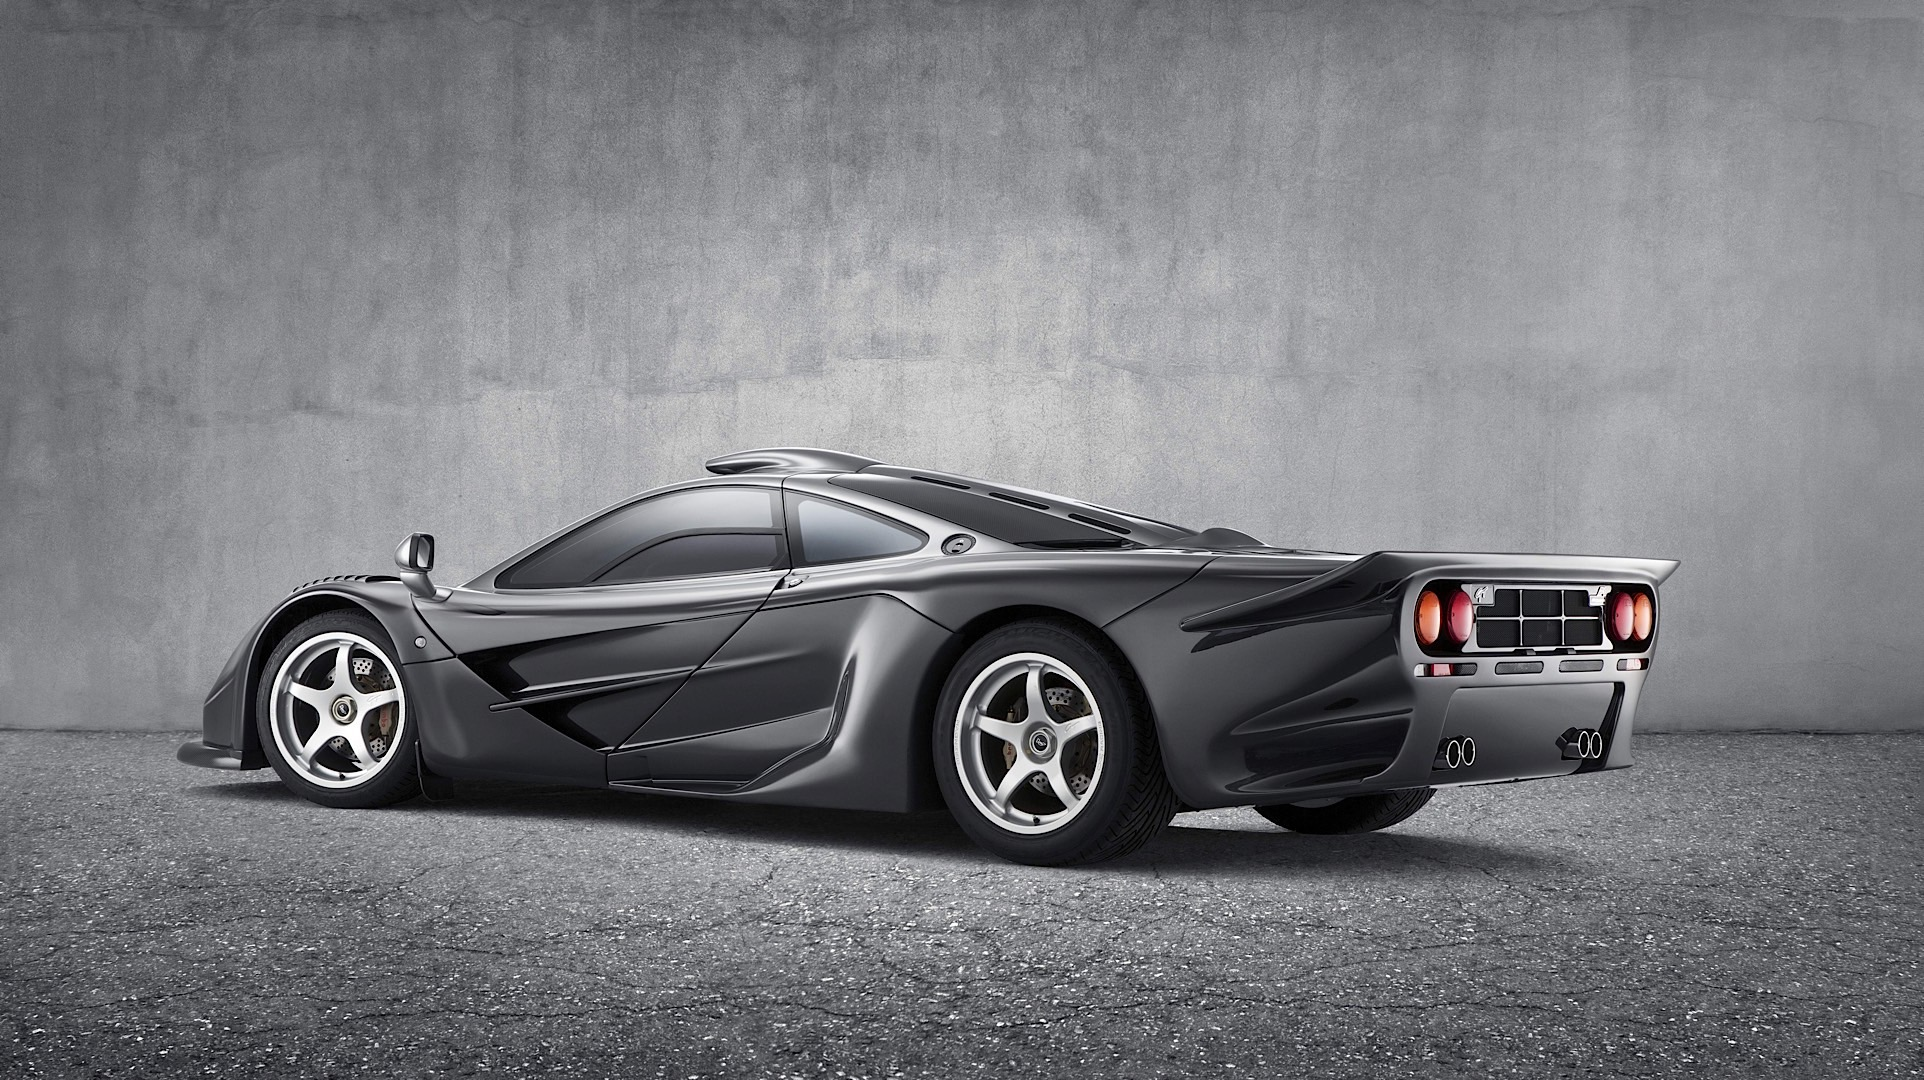 https://s1.cdn.autoevolution.com/images/news/mclaren-brings-alain-prost-inspired-p1-and-f1-gt-to-goodwood-photo-gallery-97103_1.jpg